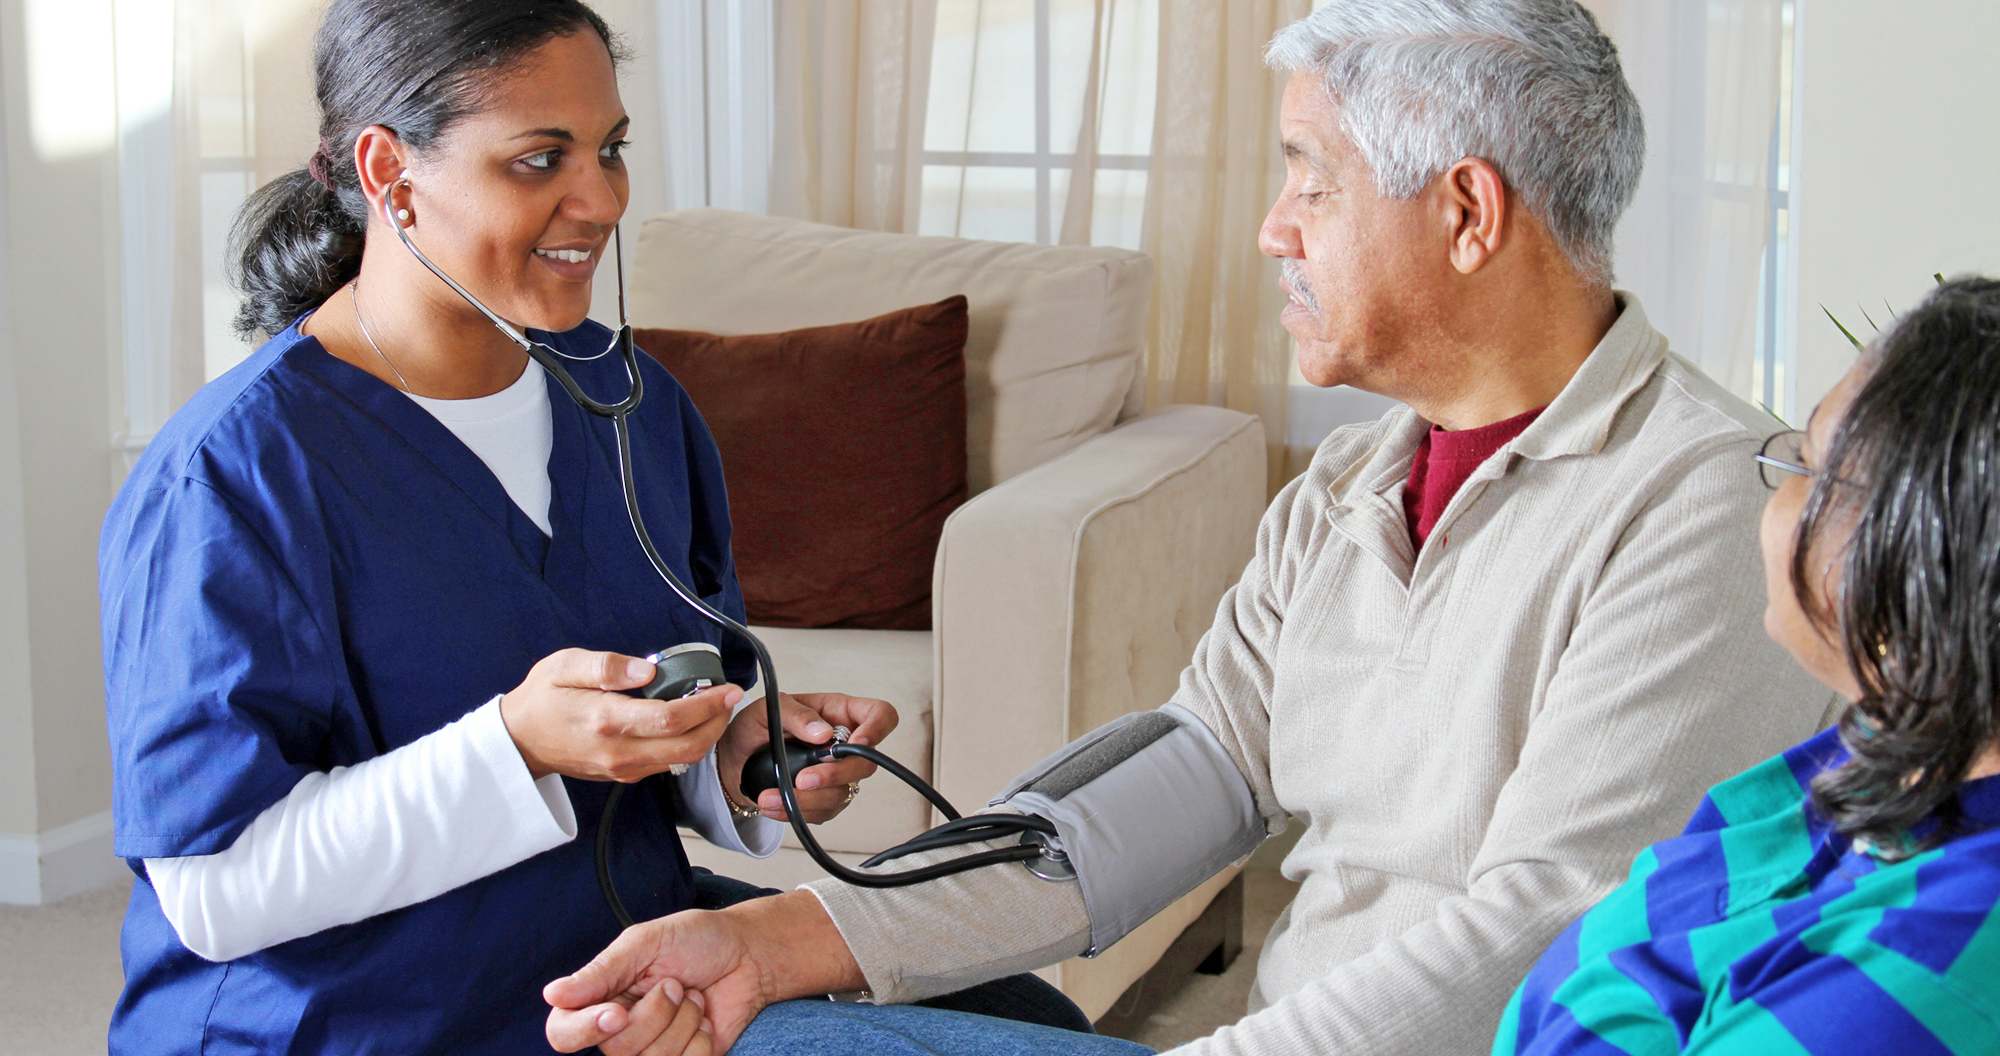 bigstock-Home-health-care-worker-and-an-13926641